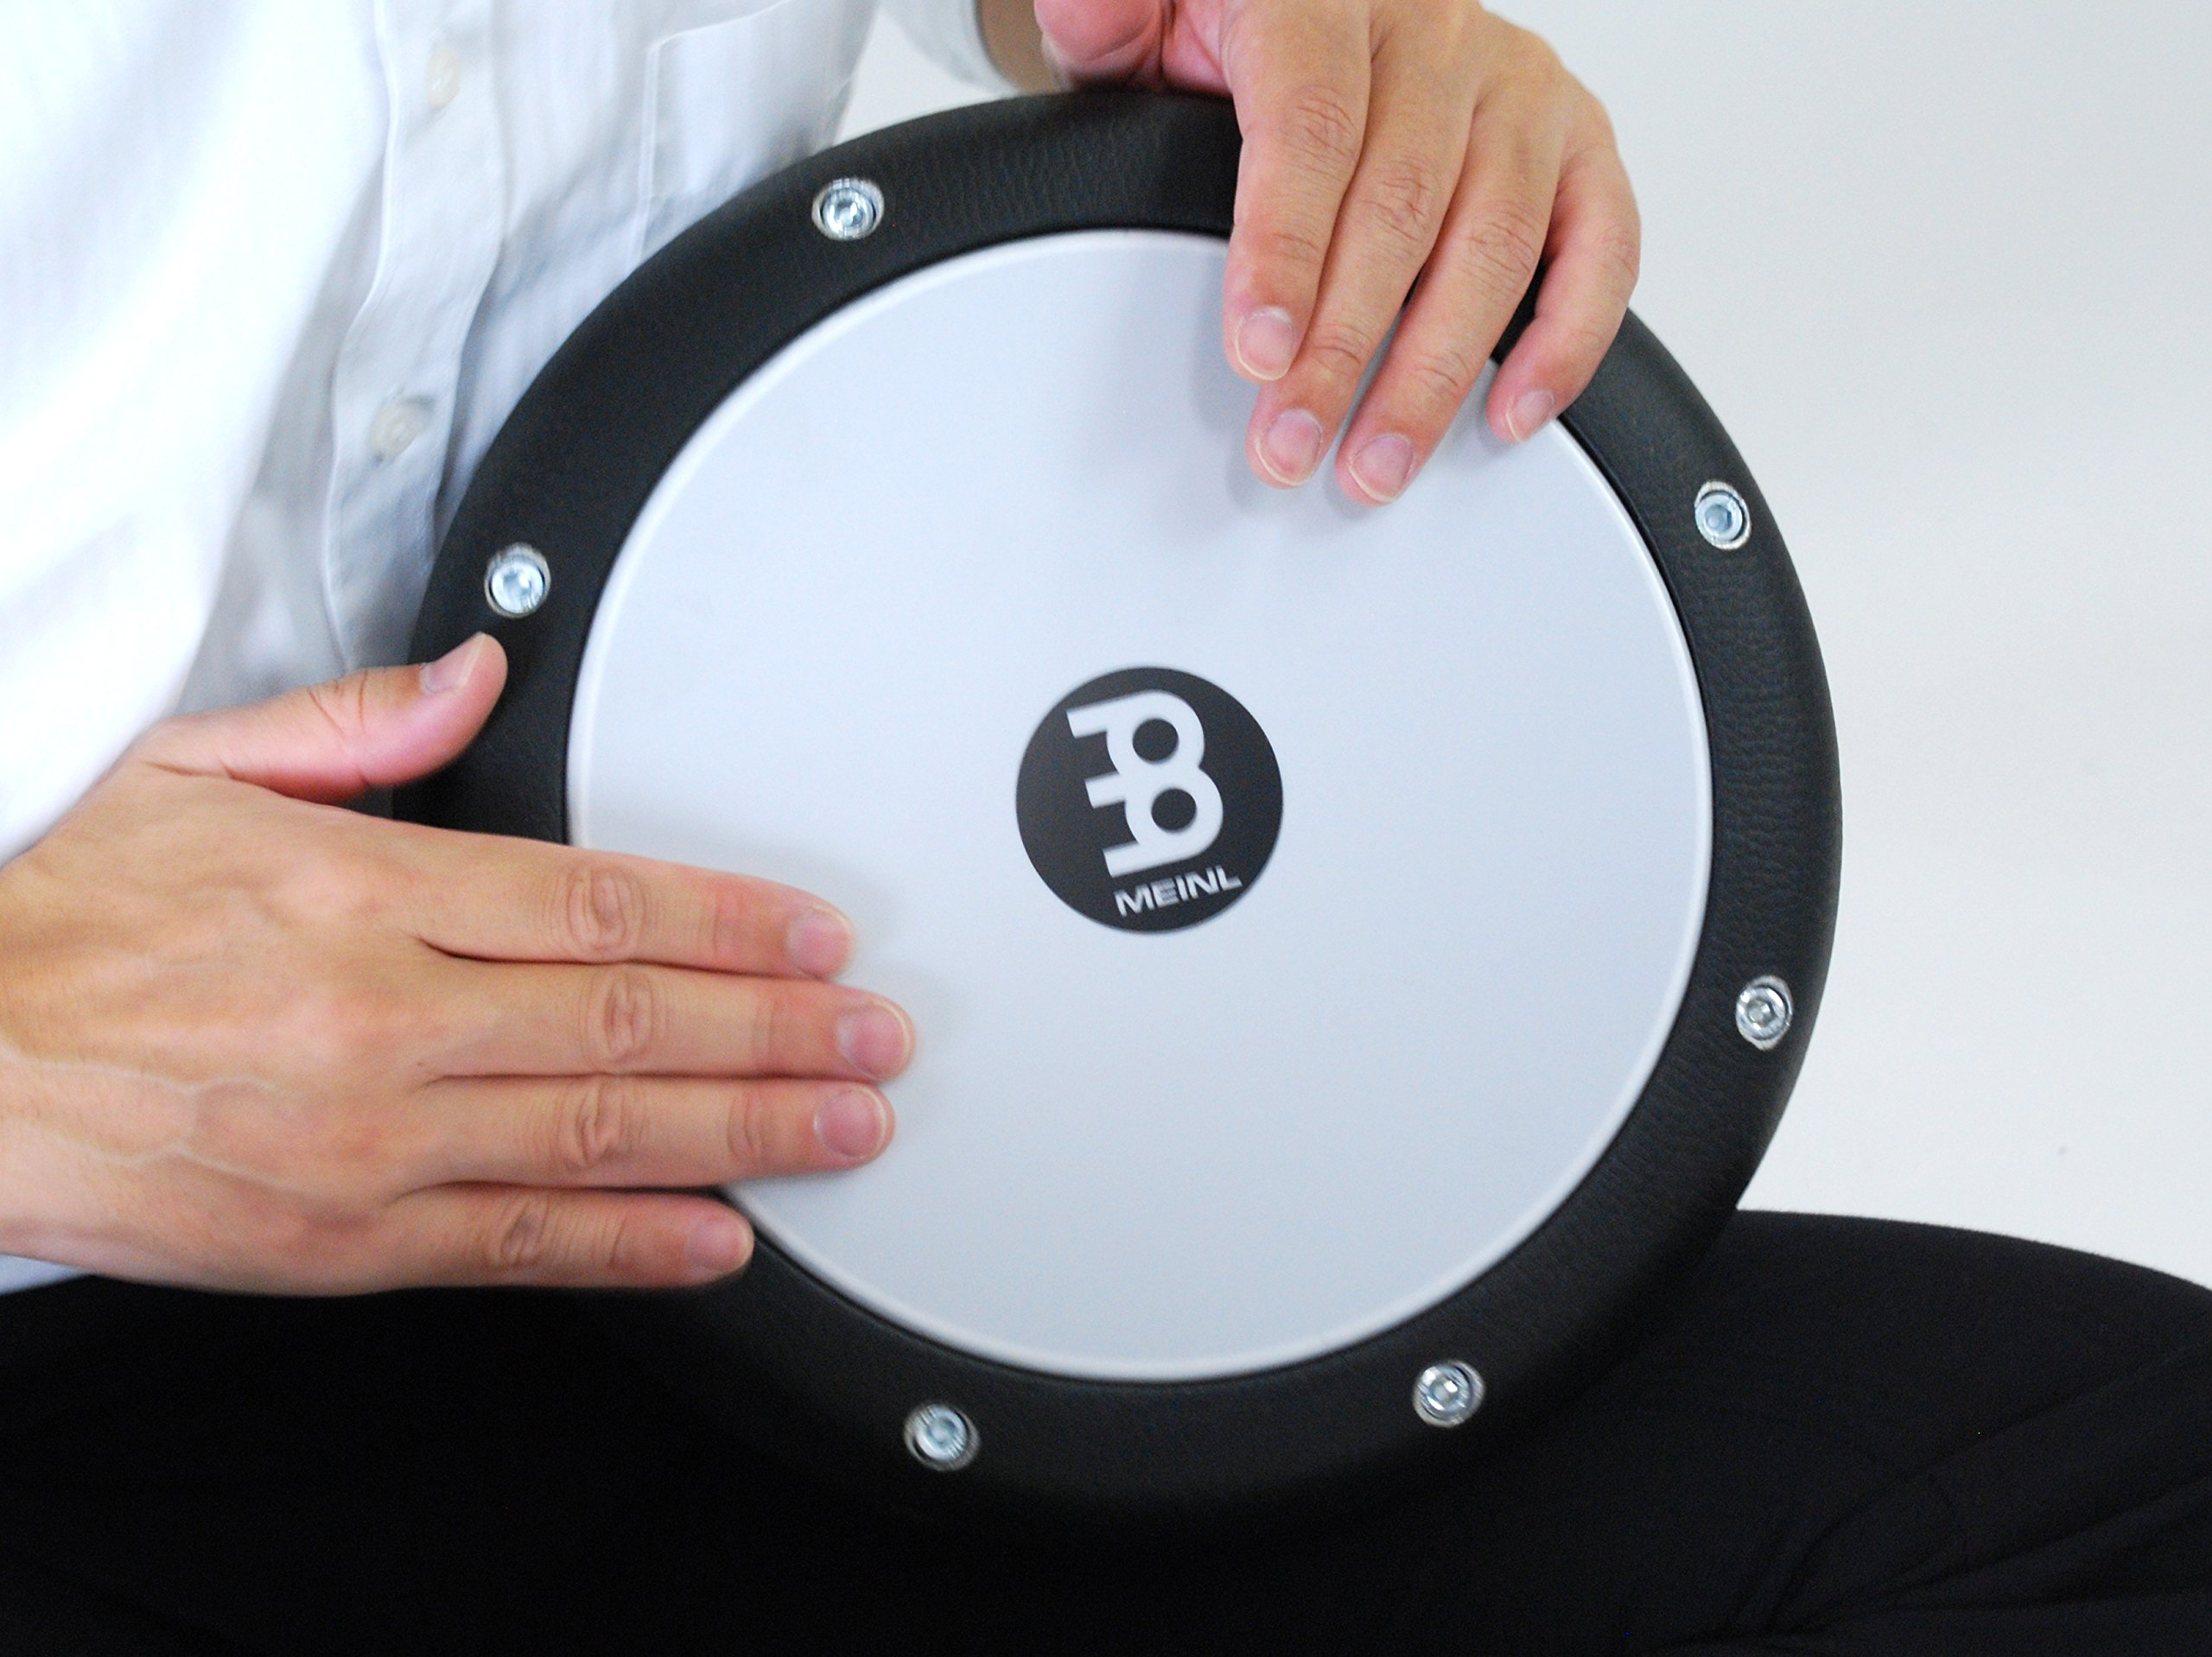 Meinl Percussion Doumbek in Leatherette Finish with Aluminum Shell - MADE IN TURKEY - 8.5'' Tunable Synthetic Head, 2-YEAR WARRANTY (HE-3000) by Meinl Percussion (Image #4)